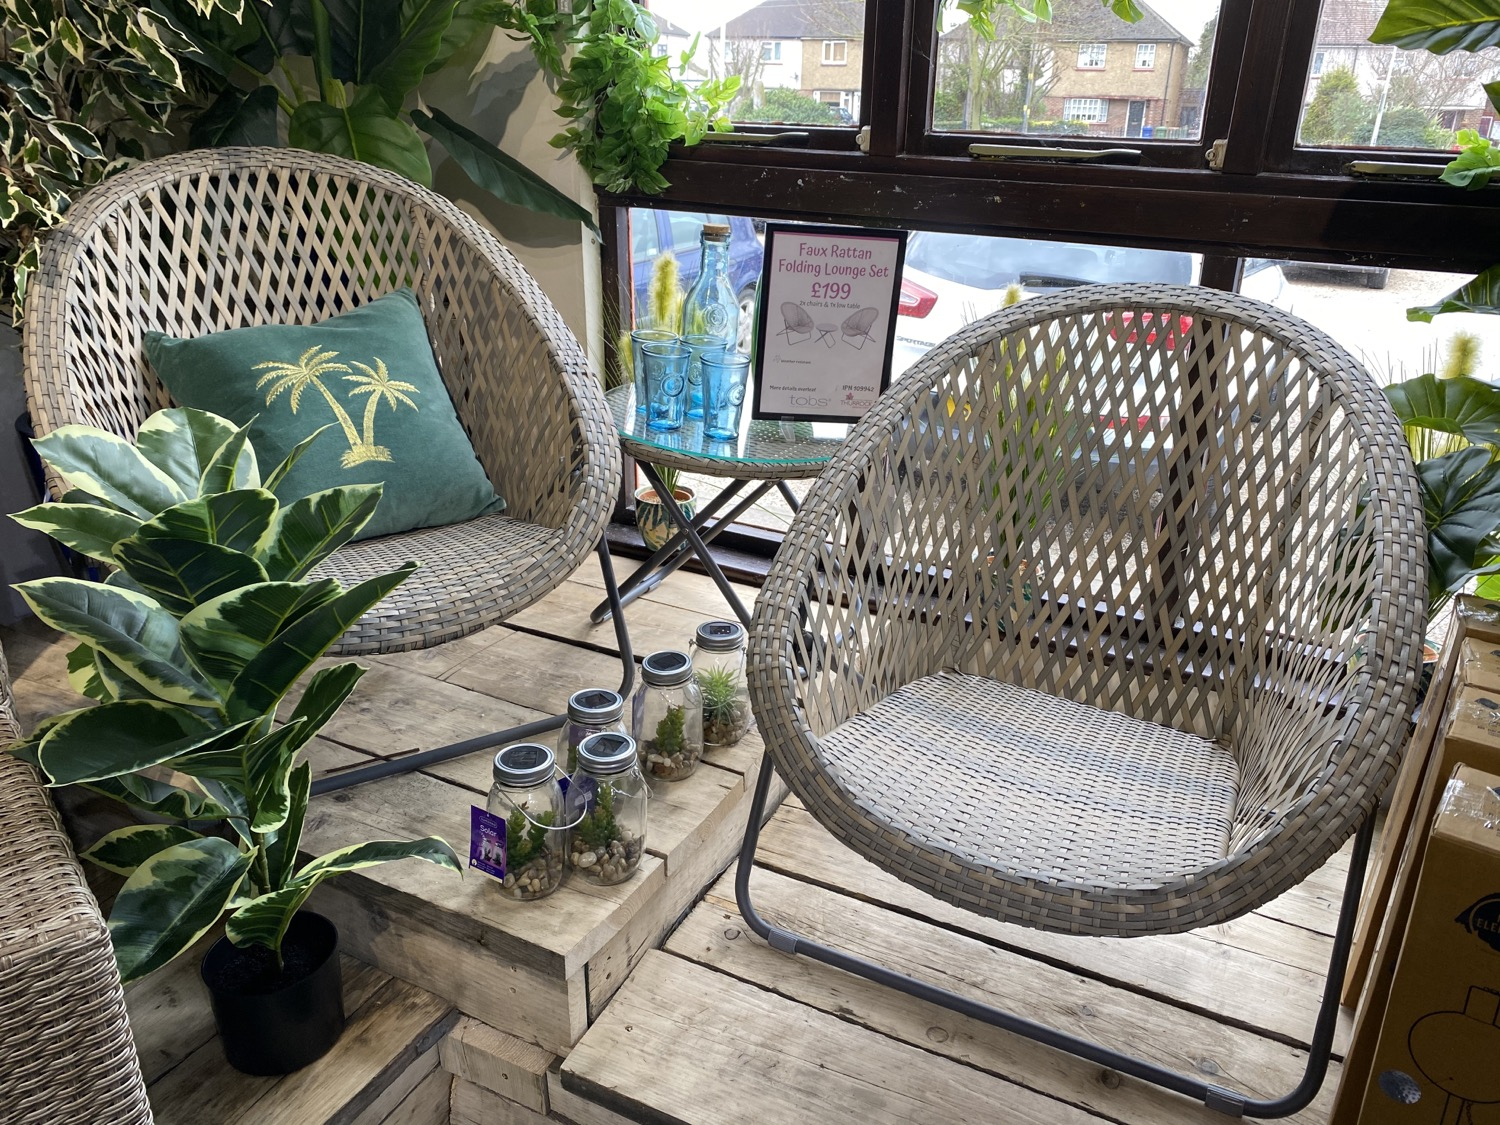 Faux Rattan Folding Lounge Set - £199